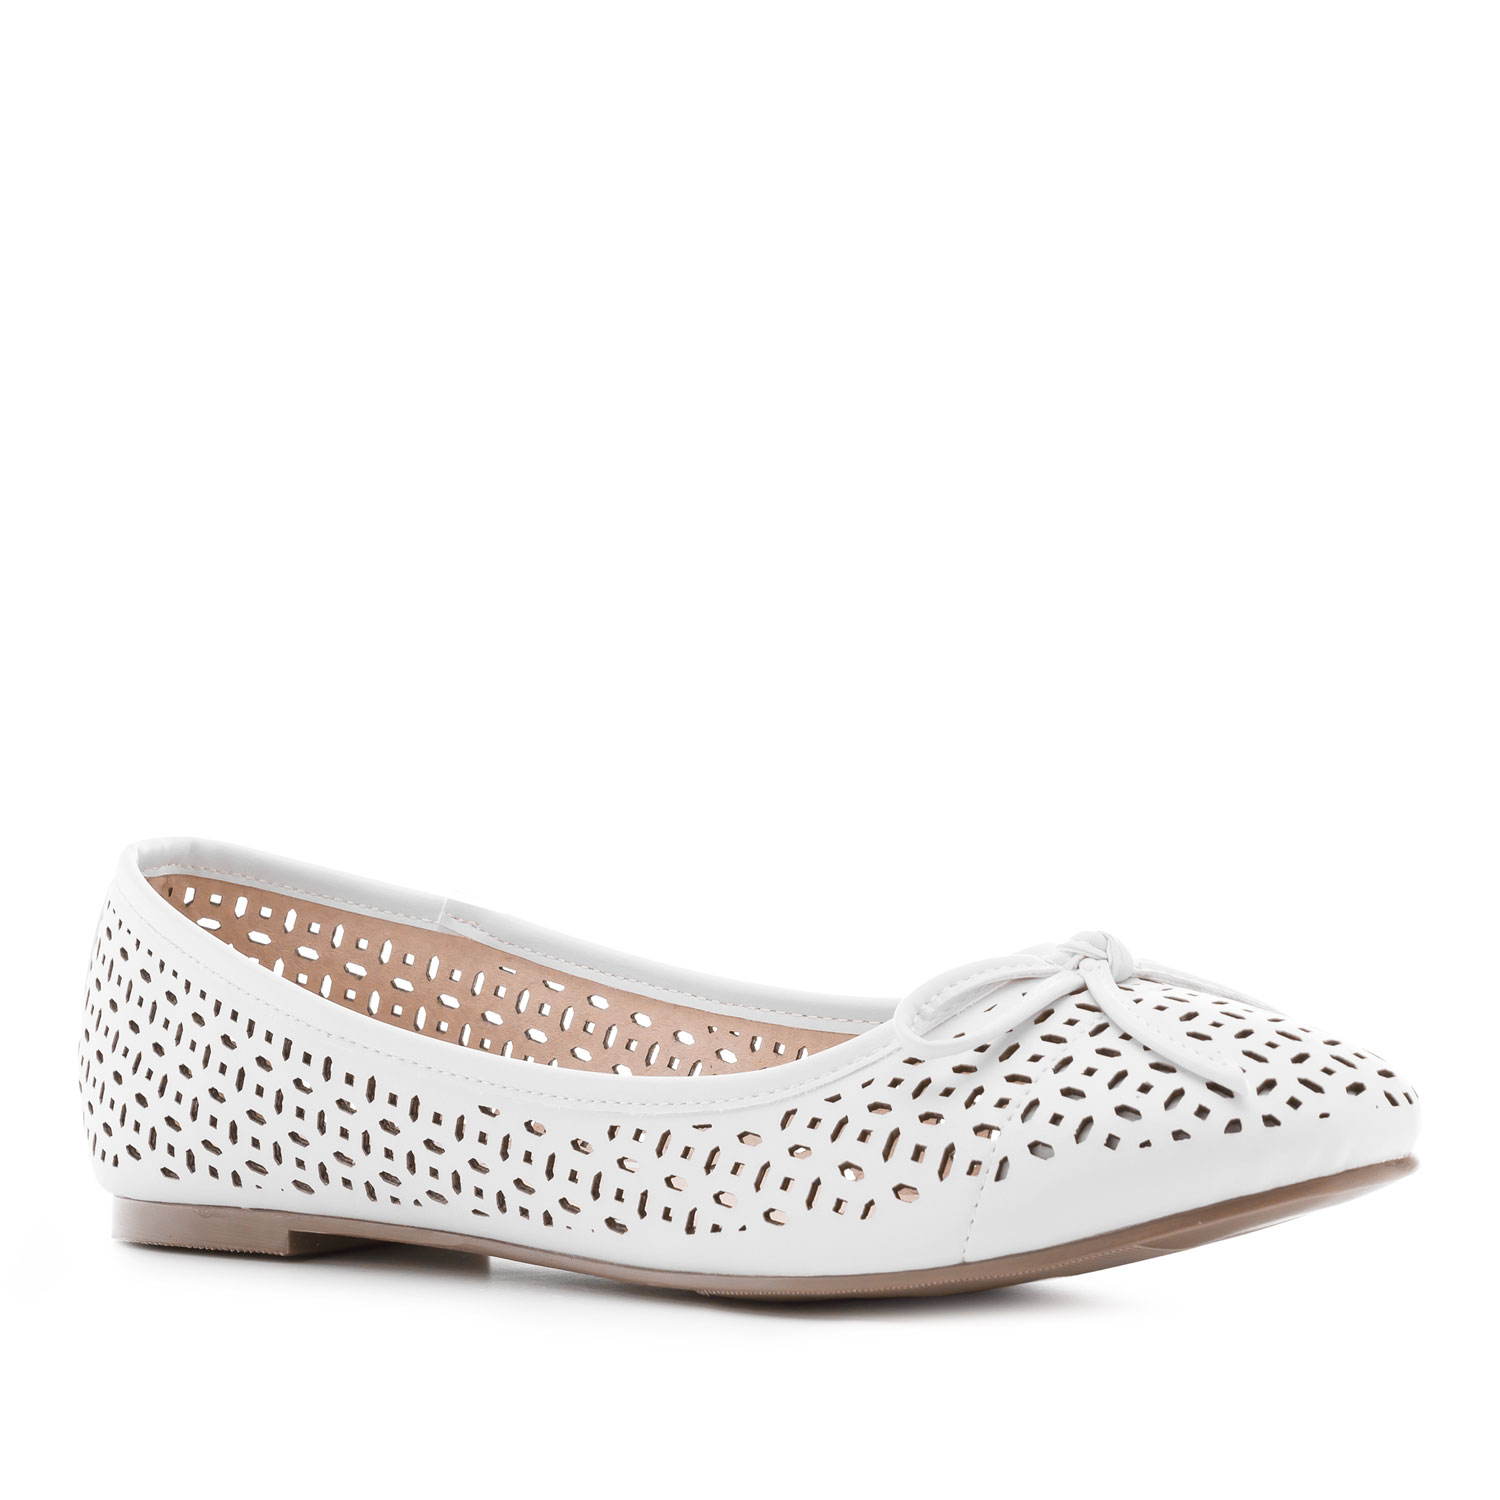 Die-cut Ballet Flats in White faux Leather